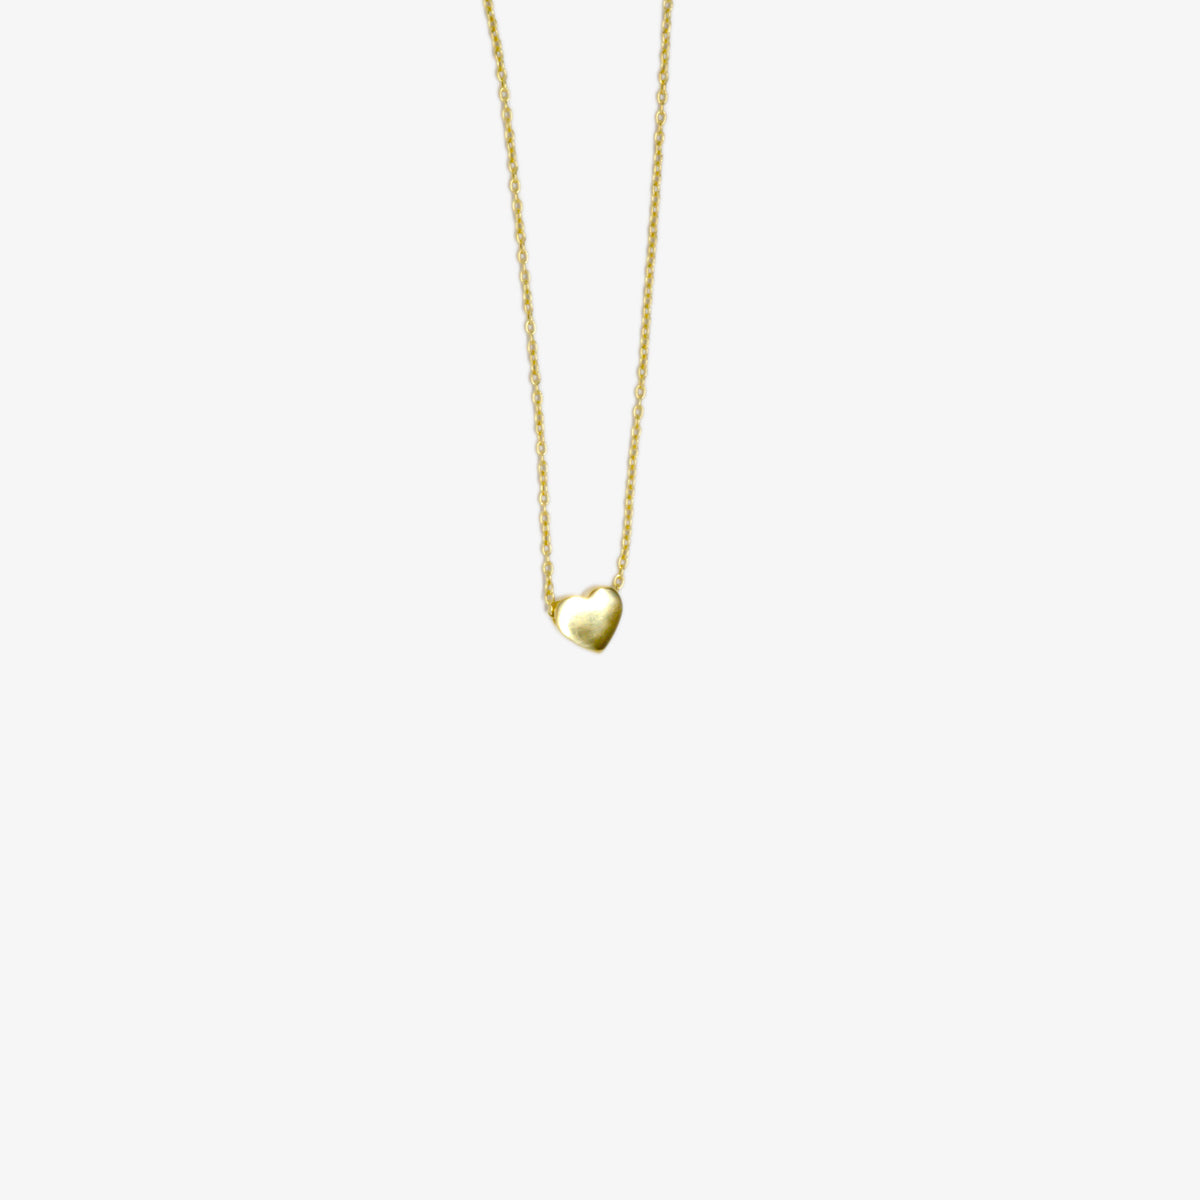 Yellow Gold Heart Pendant Necklace